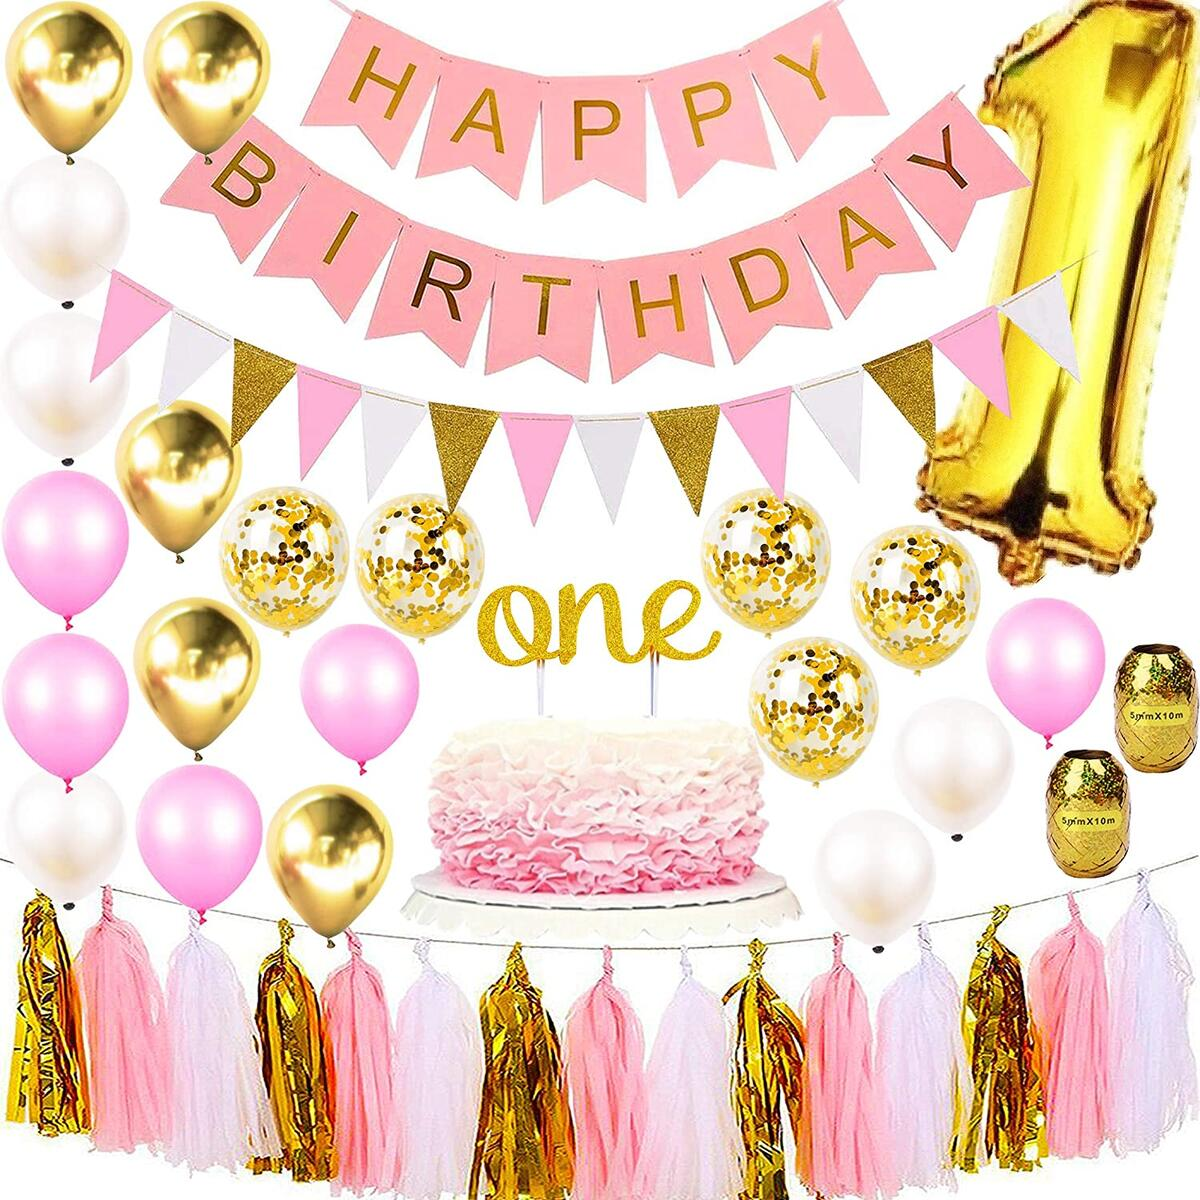 1st Birthday Girl Decorations Premium Party Supplies | Baby Princess First Pink Gold Girls Theme Kit | 1 Year Cake Topper, Happy Bday Banner Number Balloons | Dog, Pig, Cat, Minnie, Bunny, Bambi Set…